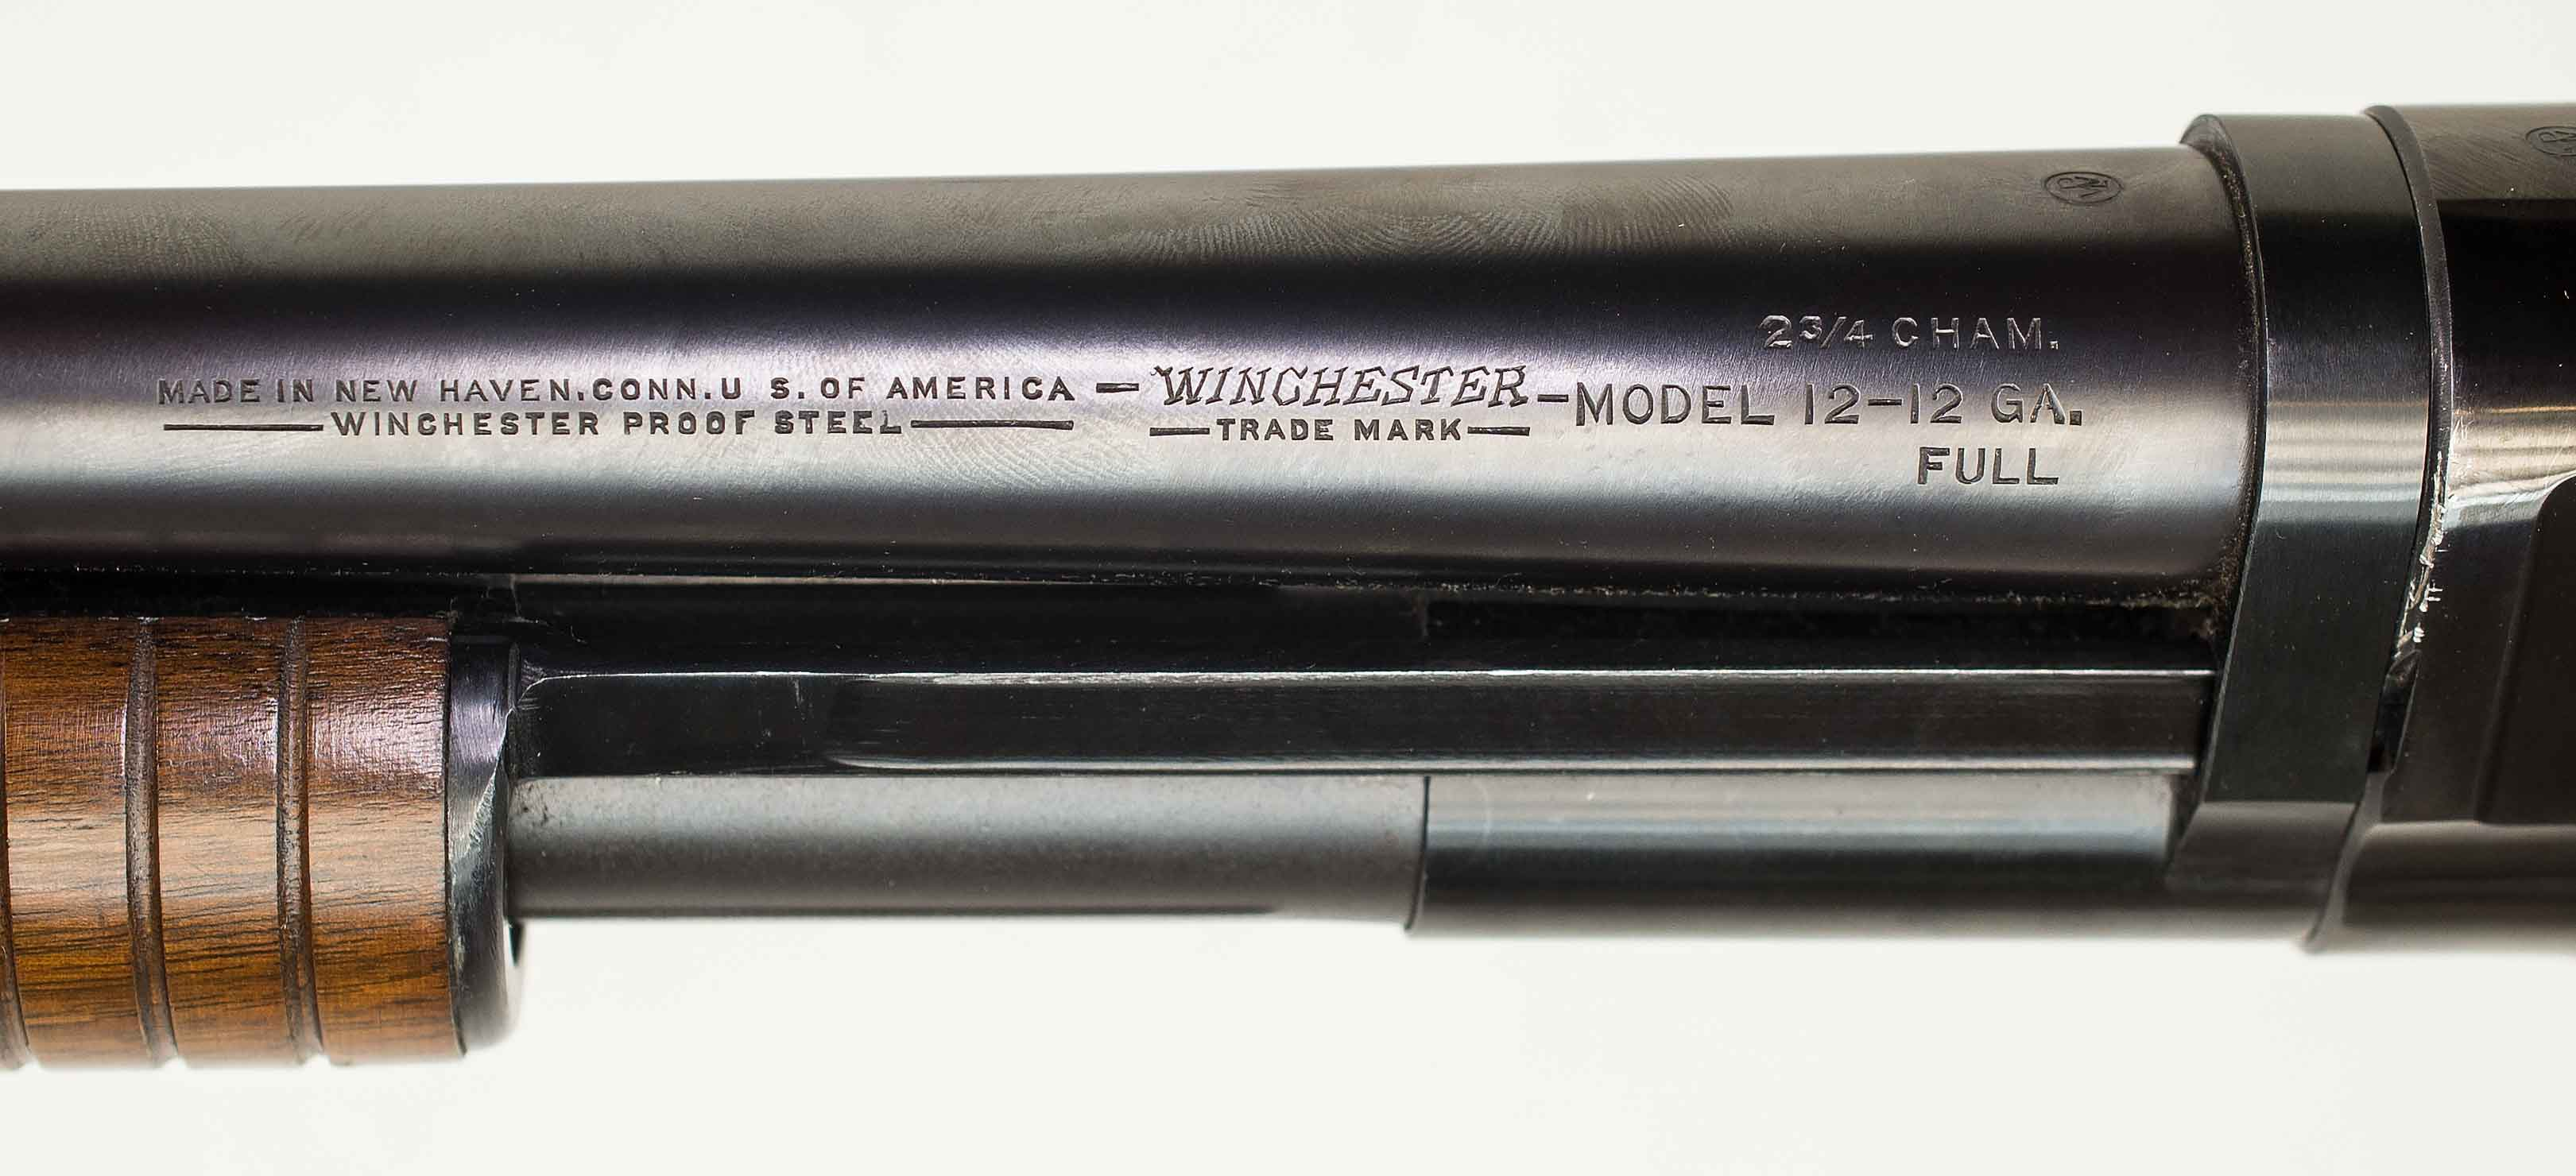 WINCHESTER MODEL 1912 [12GA] (Auction ID: 12884274, End Time